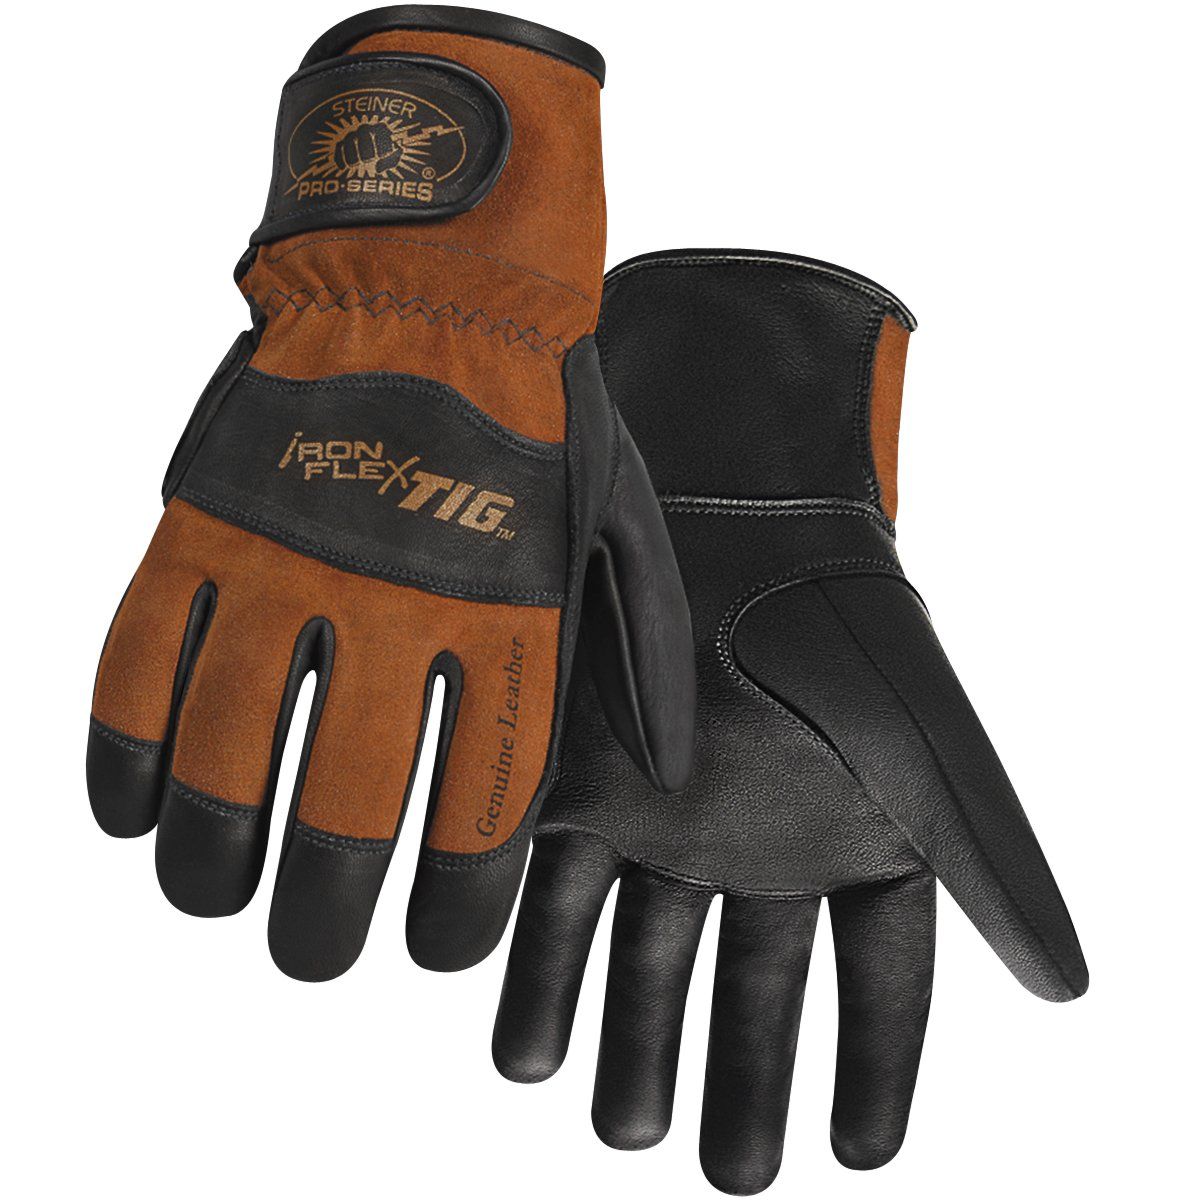 Steiner 0262-L SPS Ironflex TIG Gloves, Black Premium Grain Kidskin, Brown Reversed Grain Kidskin Back, Adjustable, Large